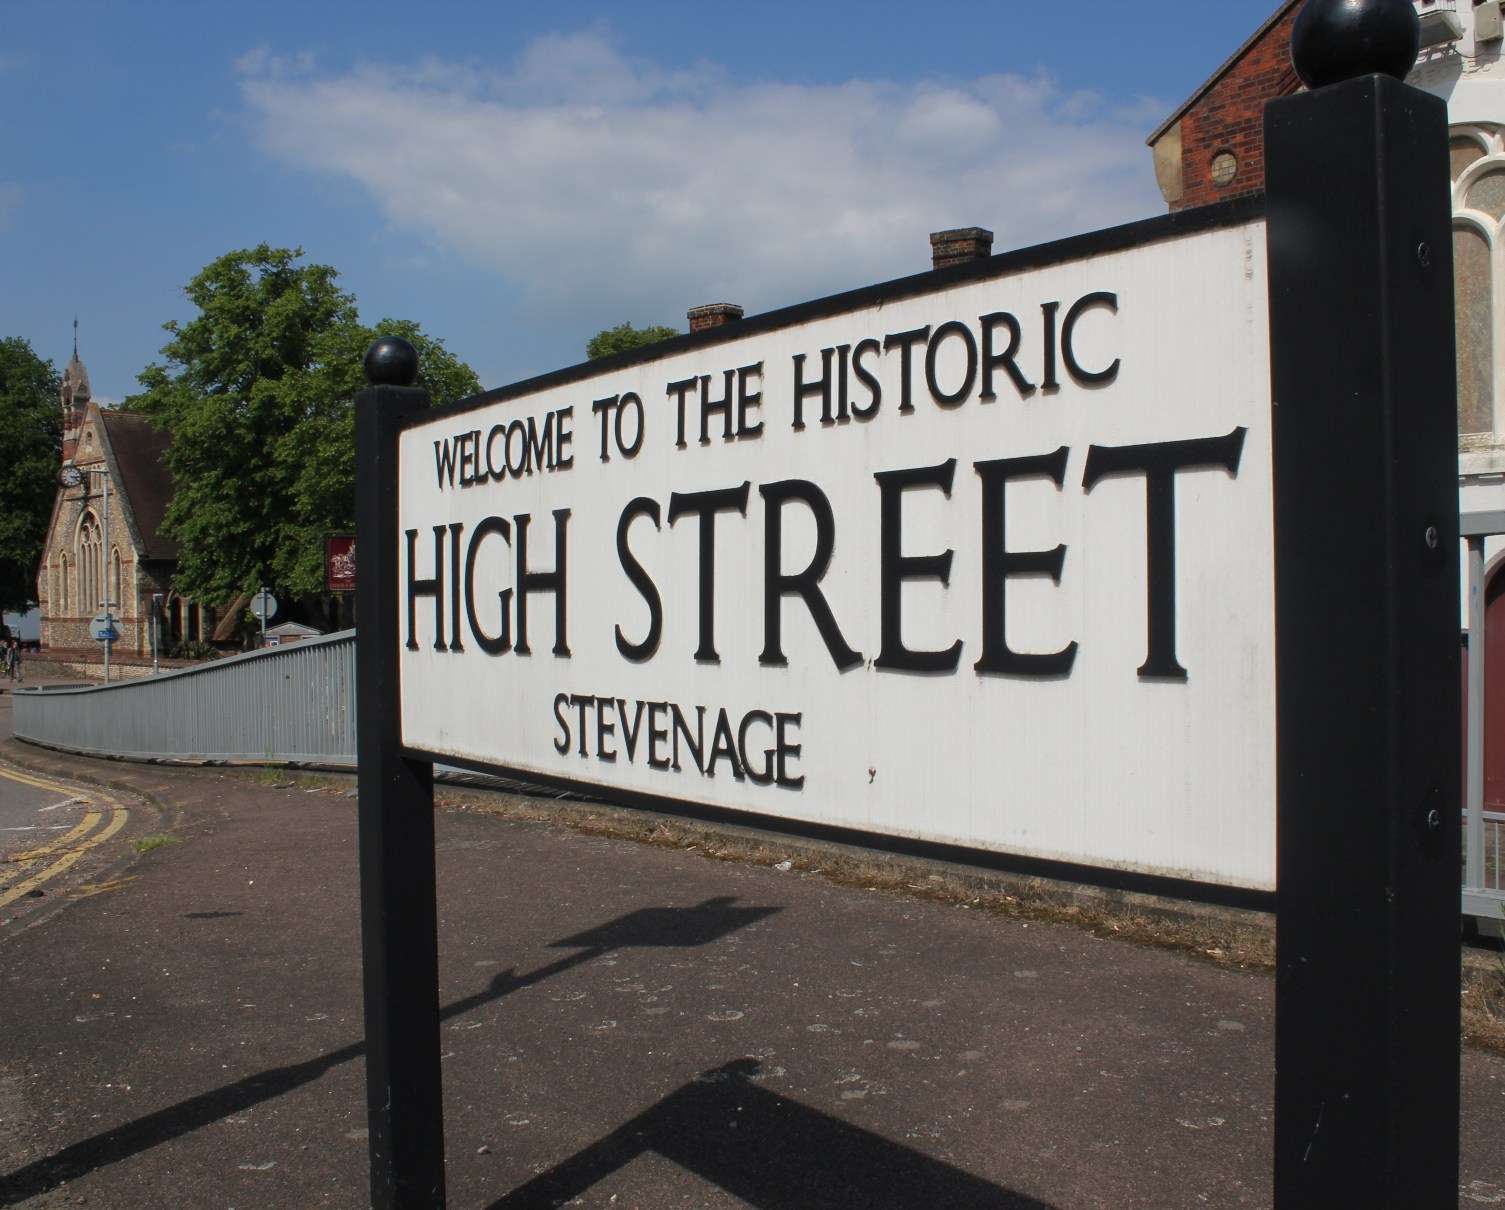 Old Town High Street © Stevenage Borough Council